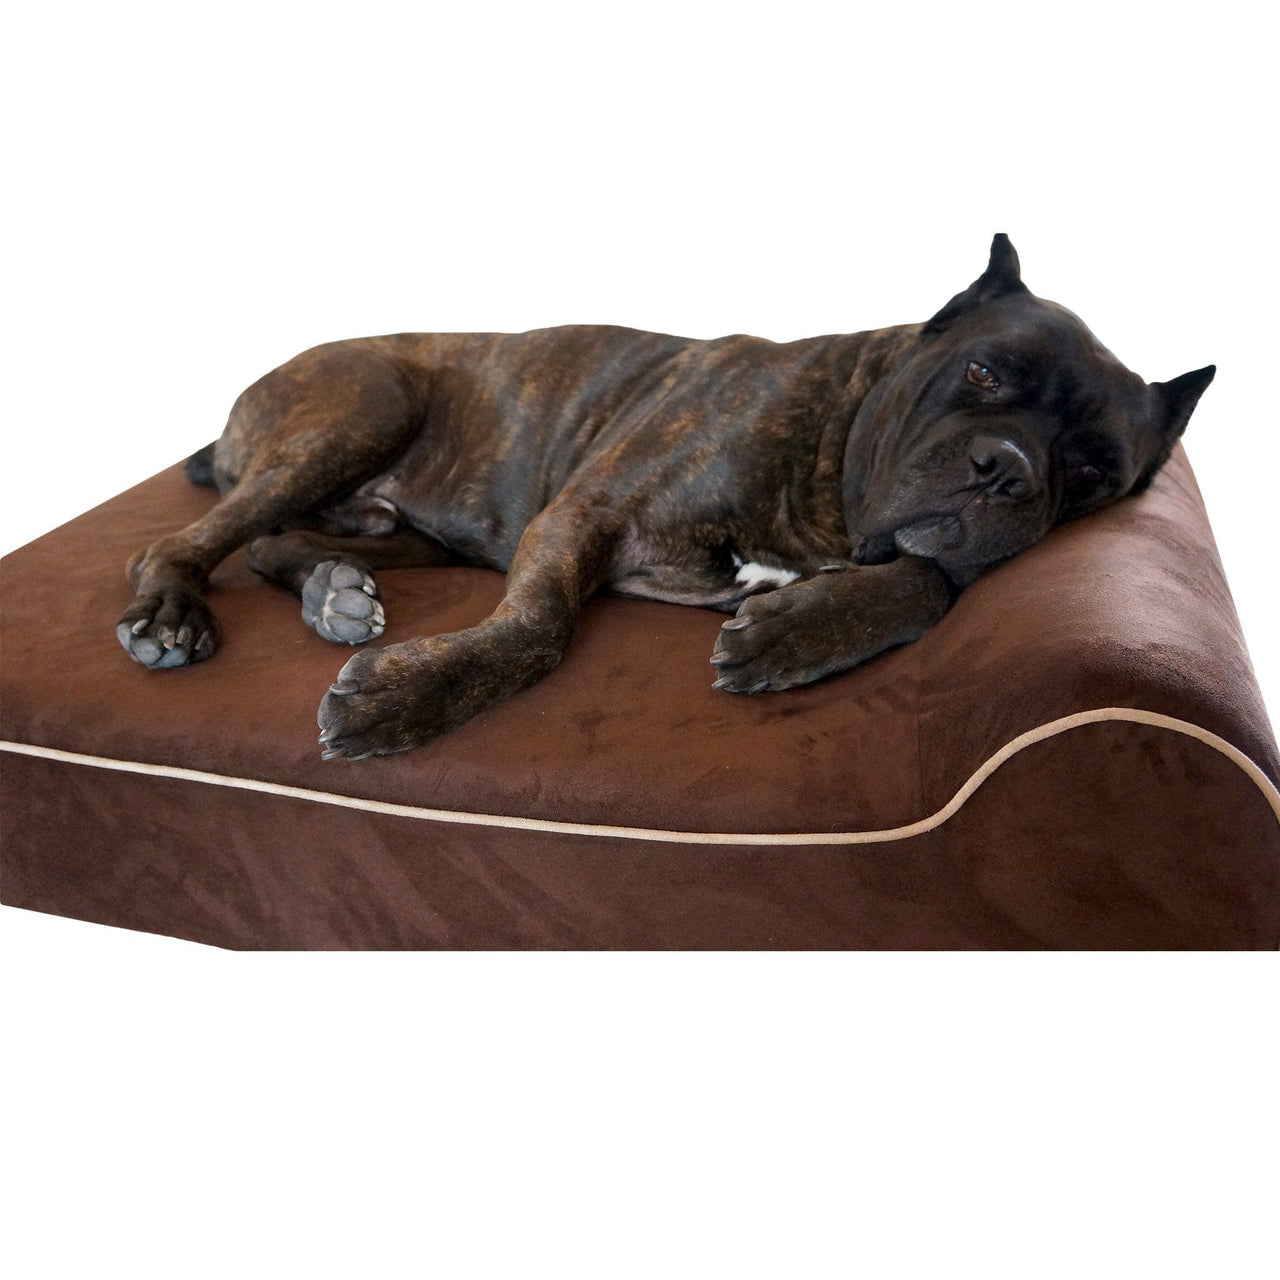 Standard Bully Bed Covers Standard Bully Bed Covers Bullybeds.com Medium $45 Chocolate